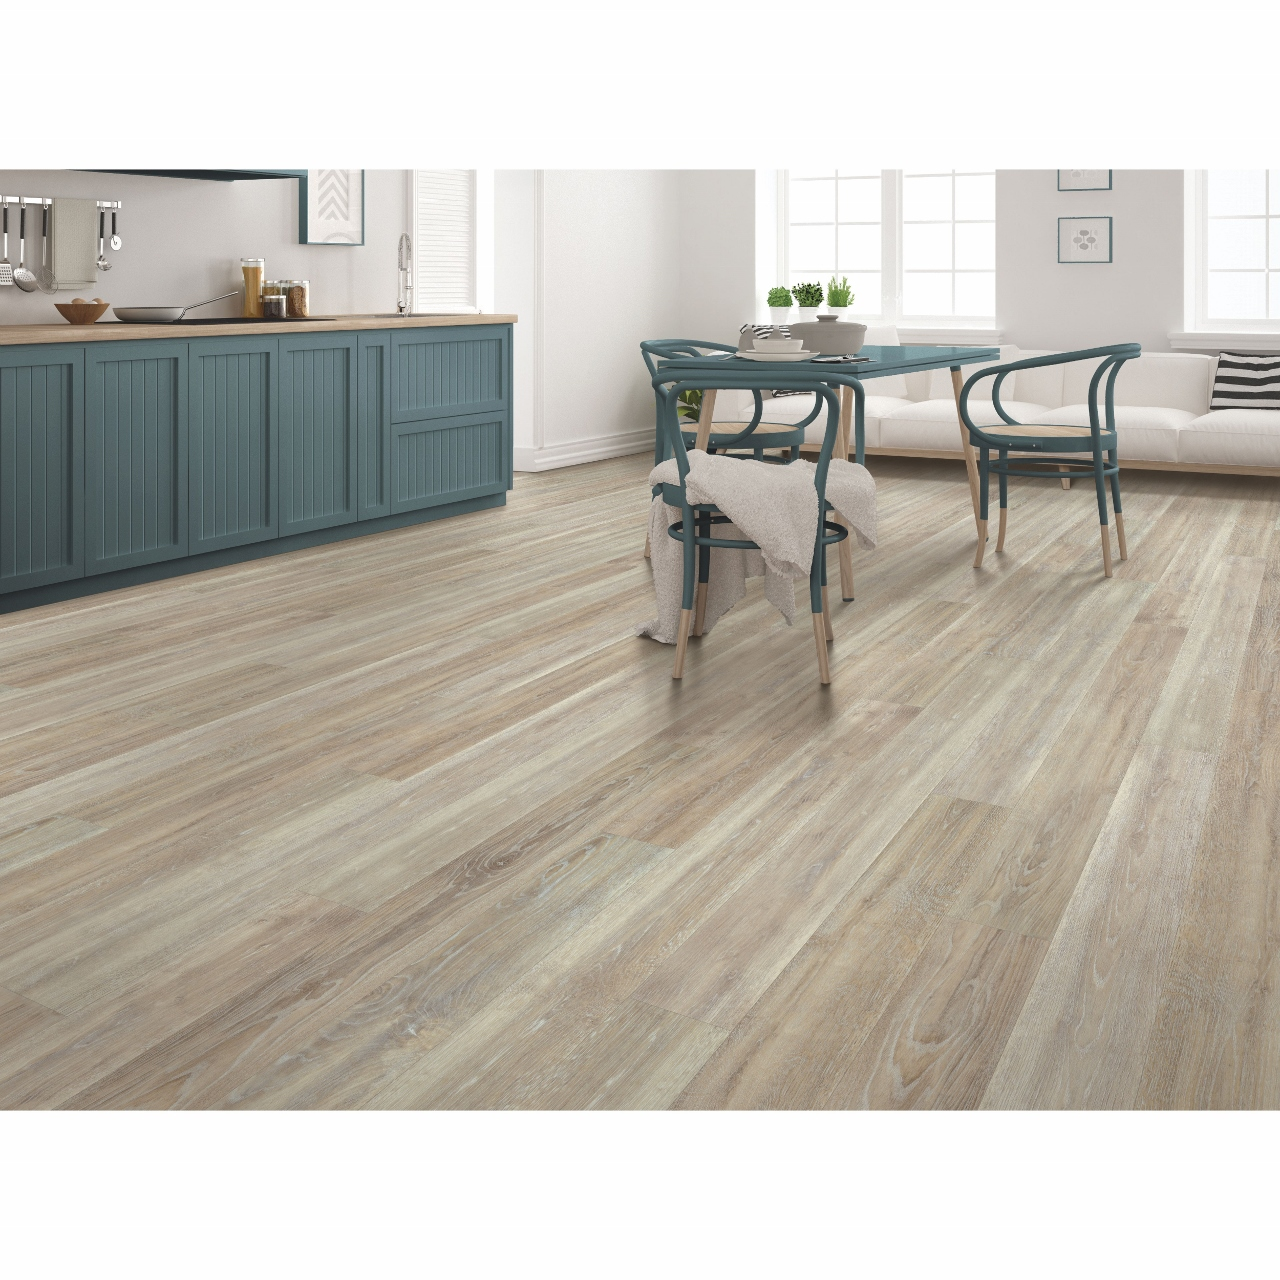 Mohawk True Design Fossil Grey Vinyl Flooring